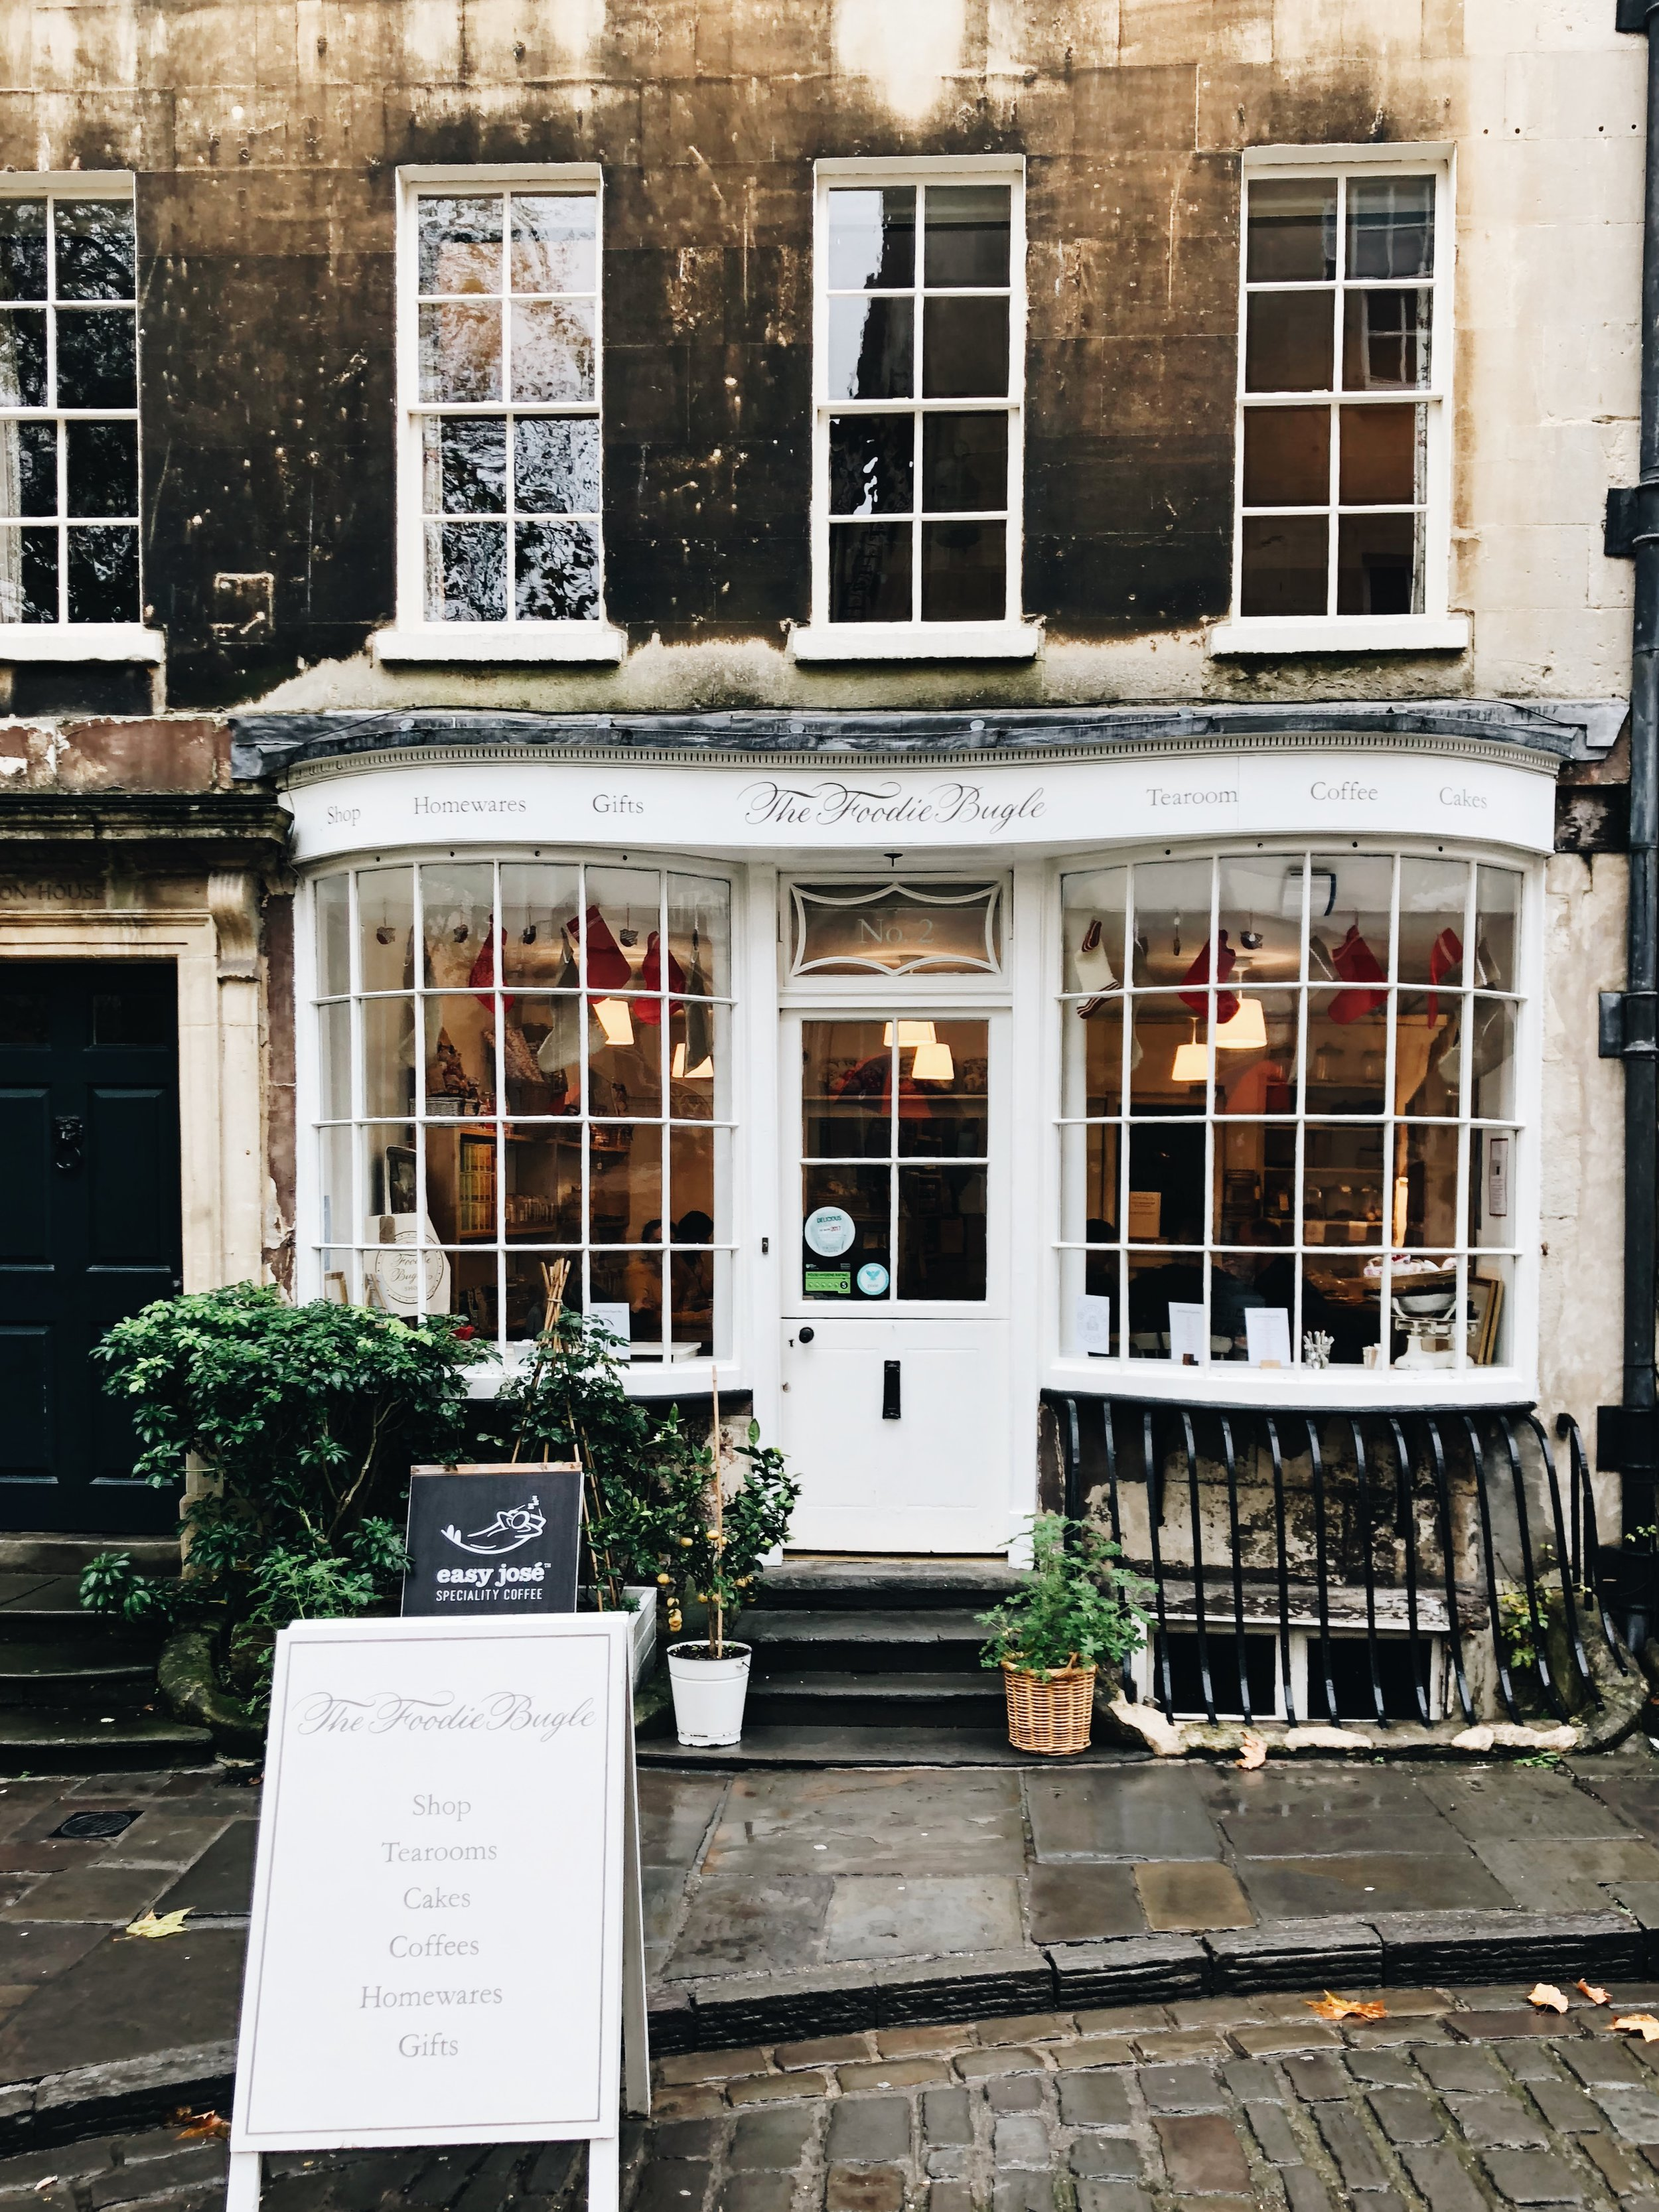 Foodie Bugle Shop | Bath, England | Sea of Atlas